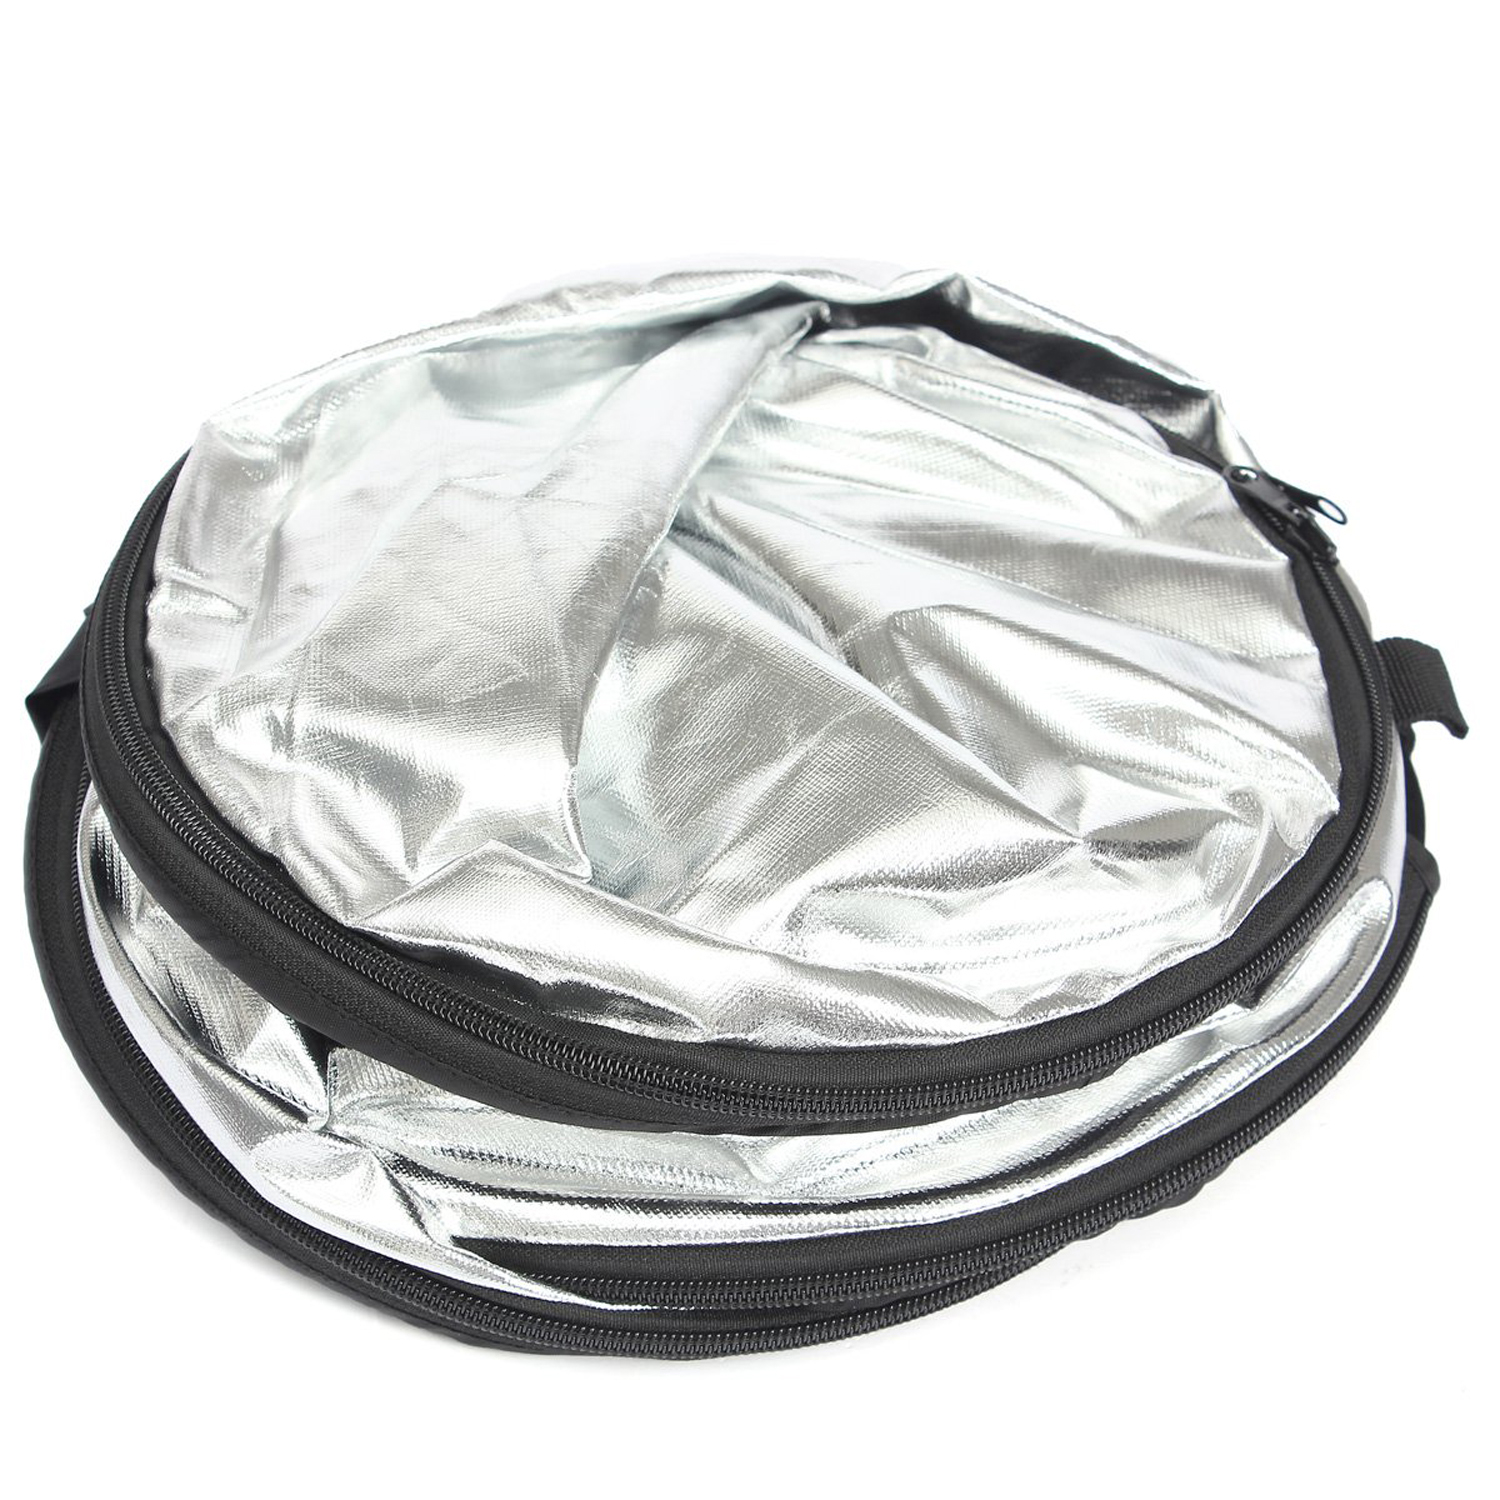 MAHA 61 91cm 5 in 1 Portable Photography Collapsible Light Reflector